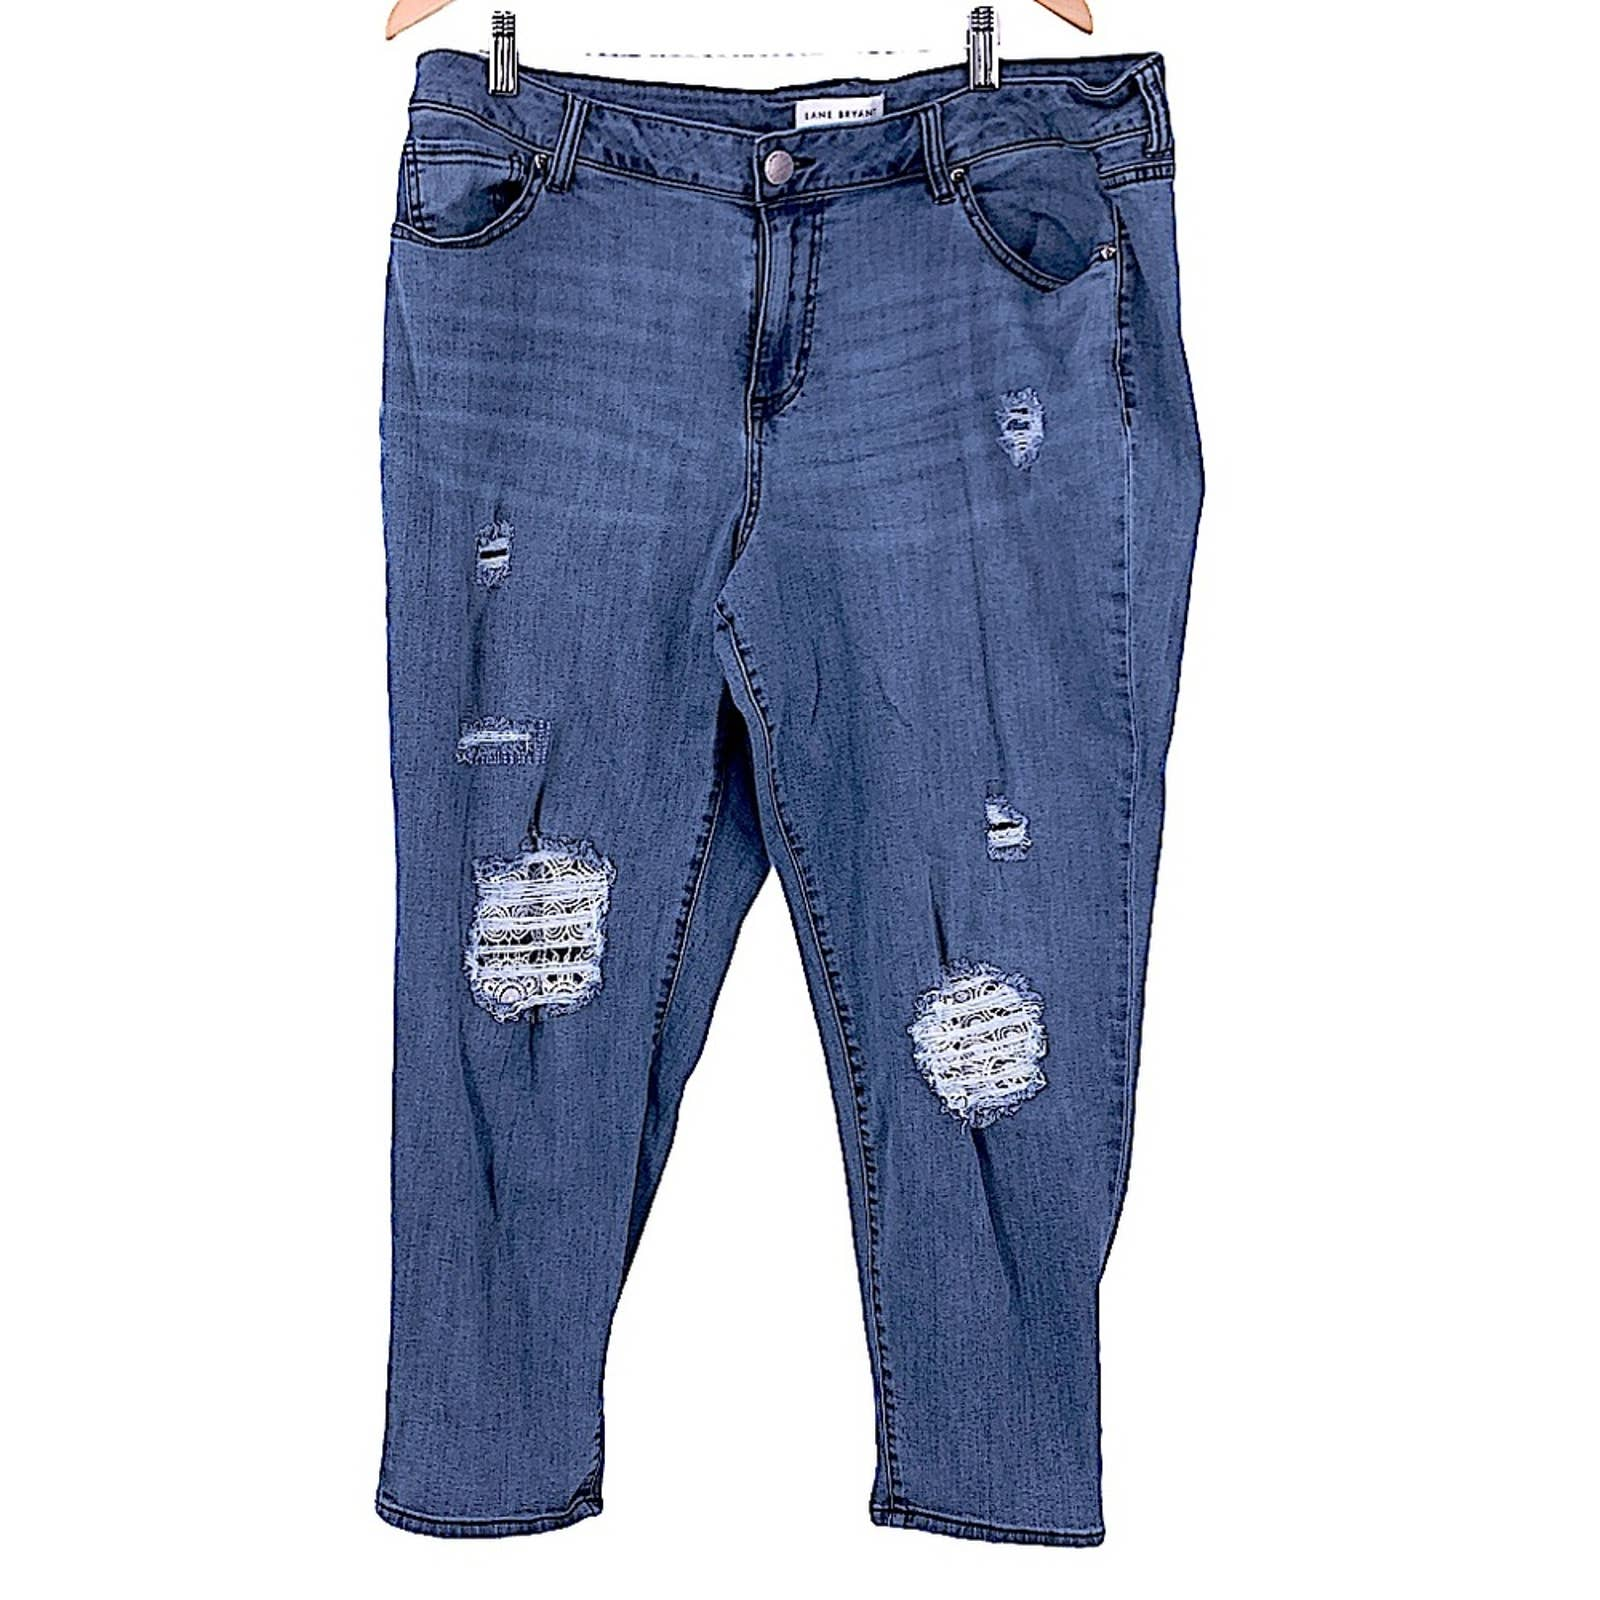 Product Image 1 - Lane Bryant jeans distressed size